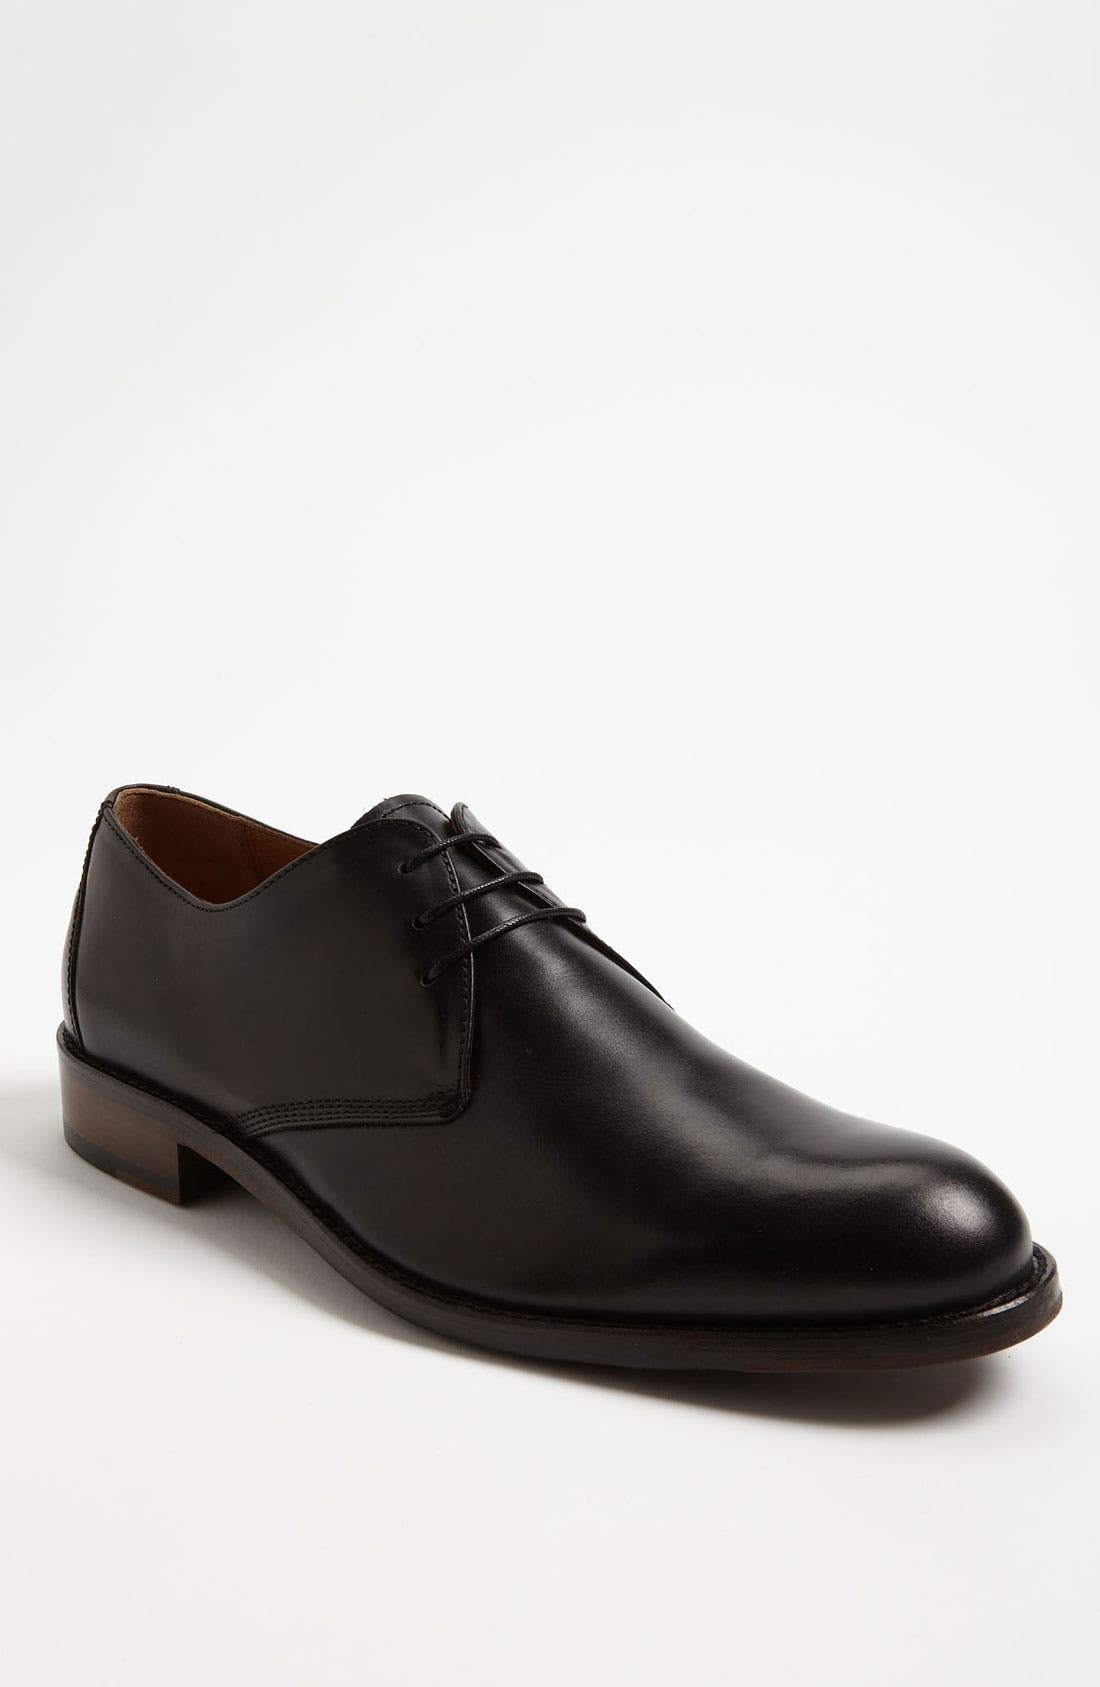 Alternate Image 1 Selected - Johnston & Murphy 'Hartley' Plain Toe Derby (Men)